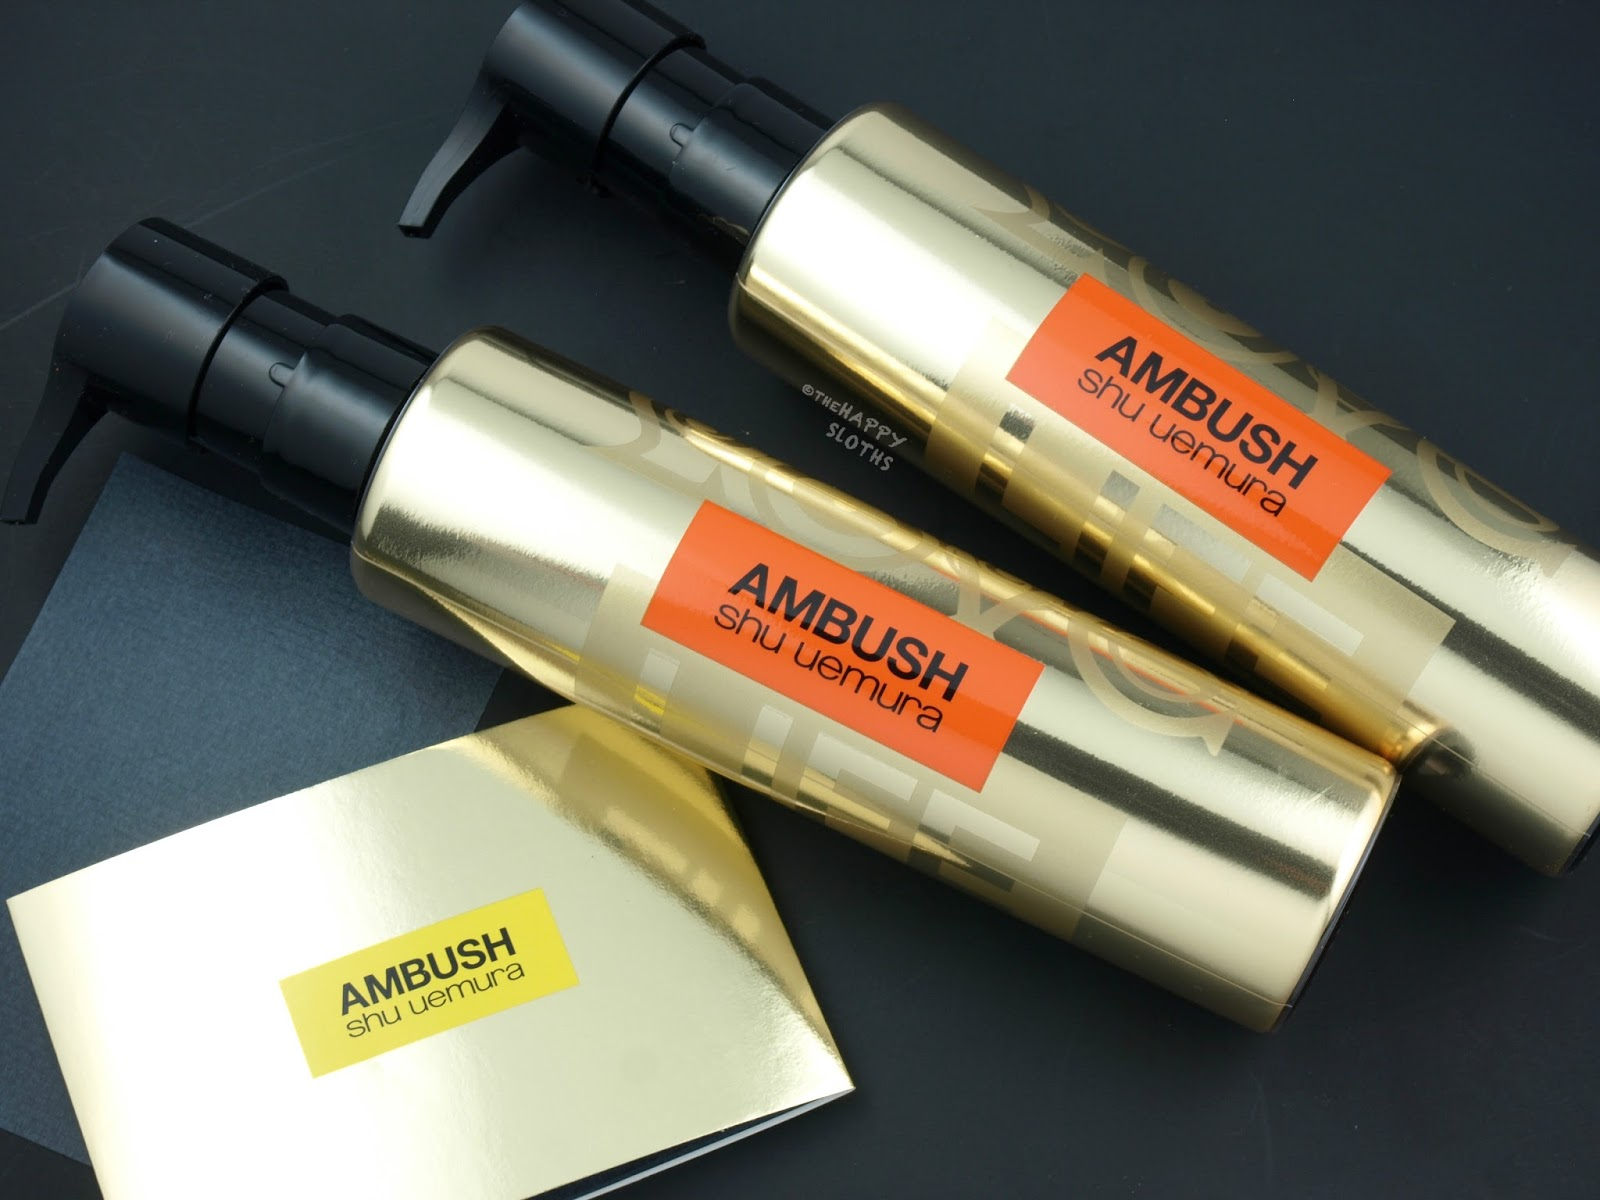 Shu Uemura x AMBUSH Collection | Cleansing Oil & Blotting Paper: Review and Swatches